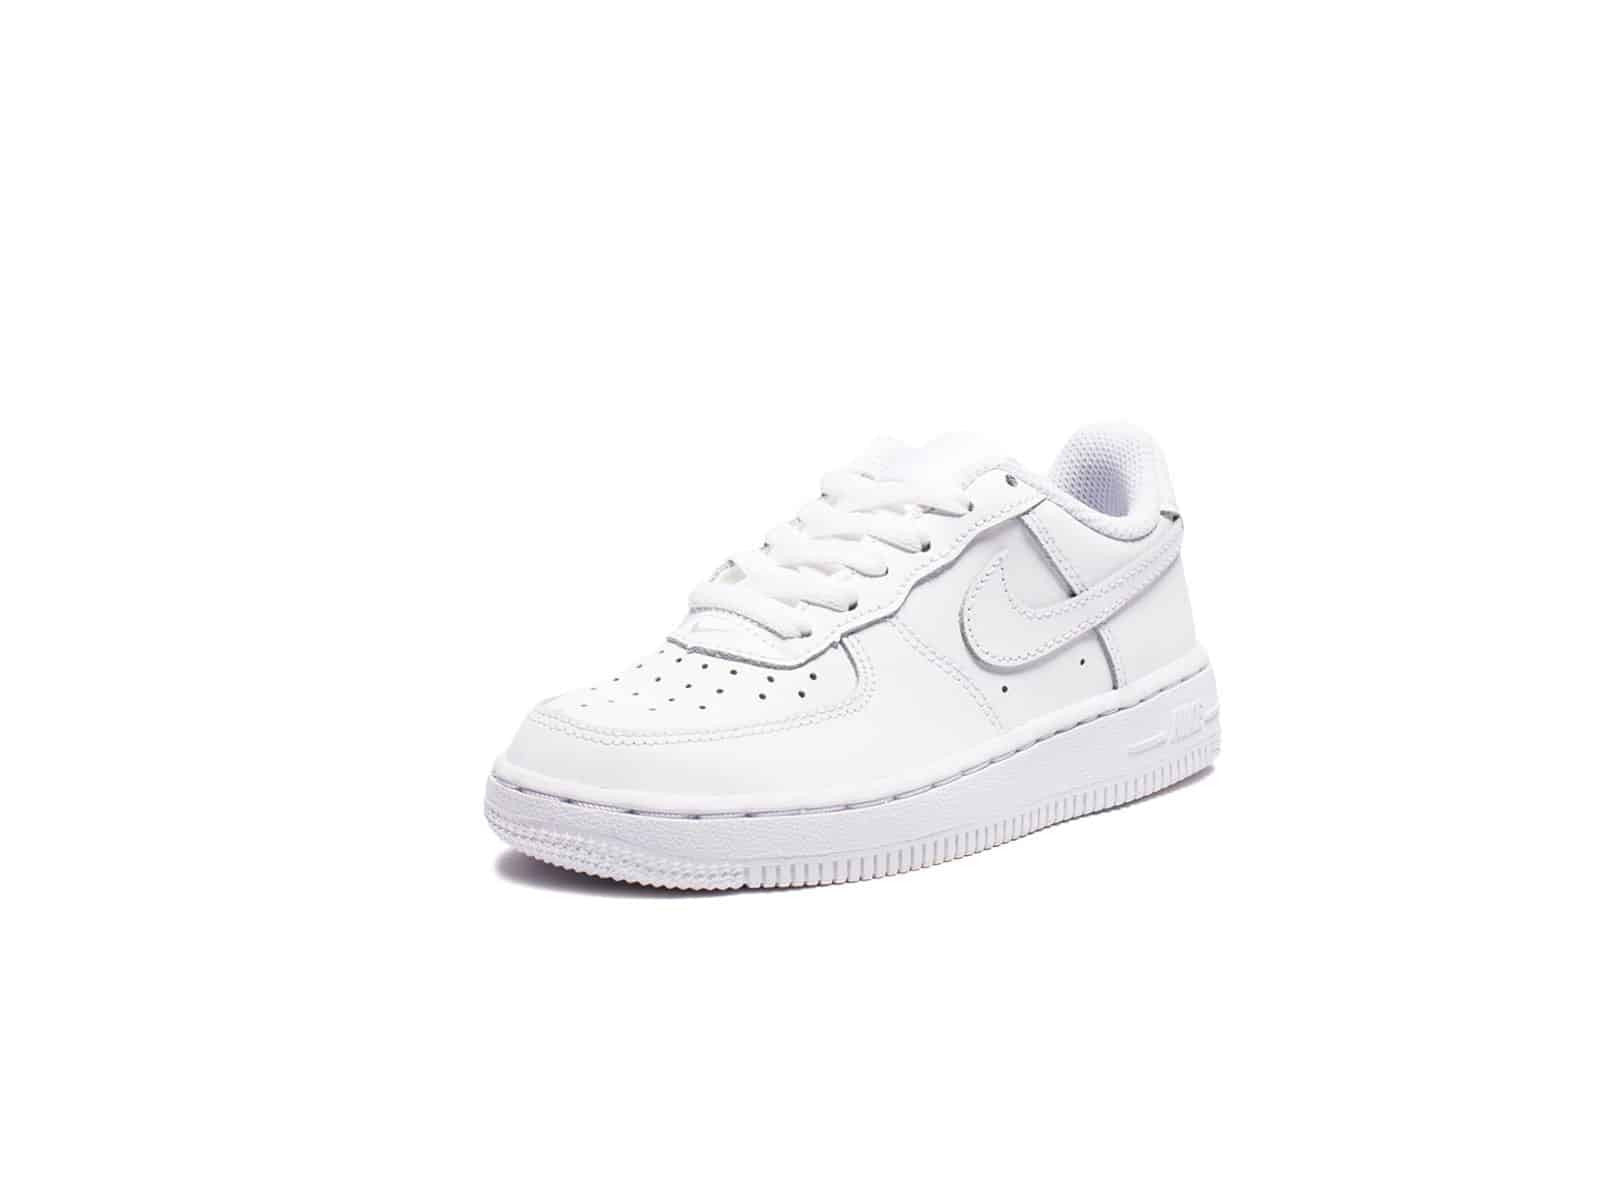 NIKE PRESCHOOL AIR FORCE 1 - WHITE/WHITE